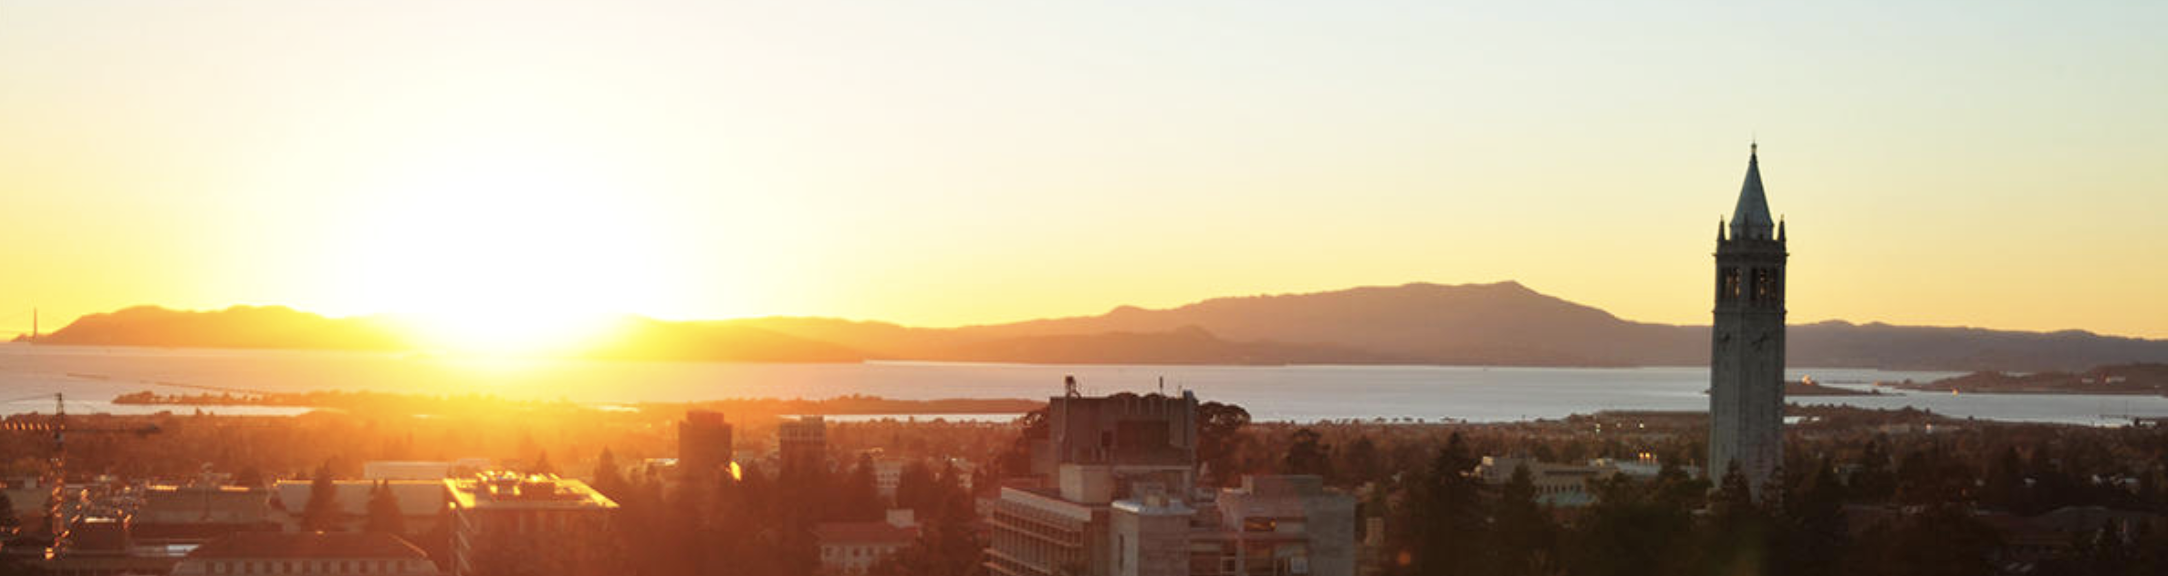 Berkeley sunset